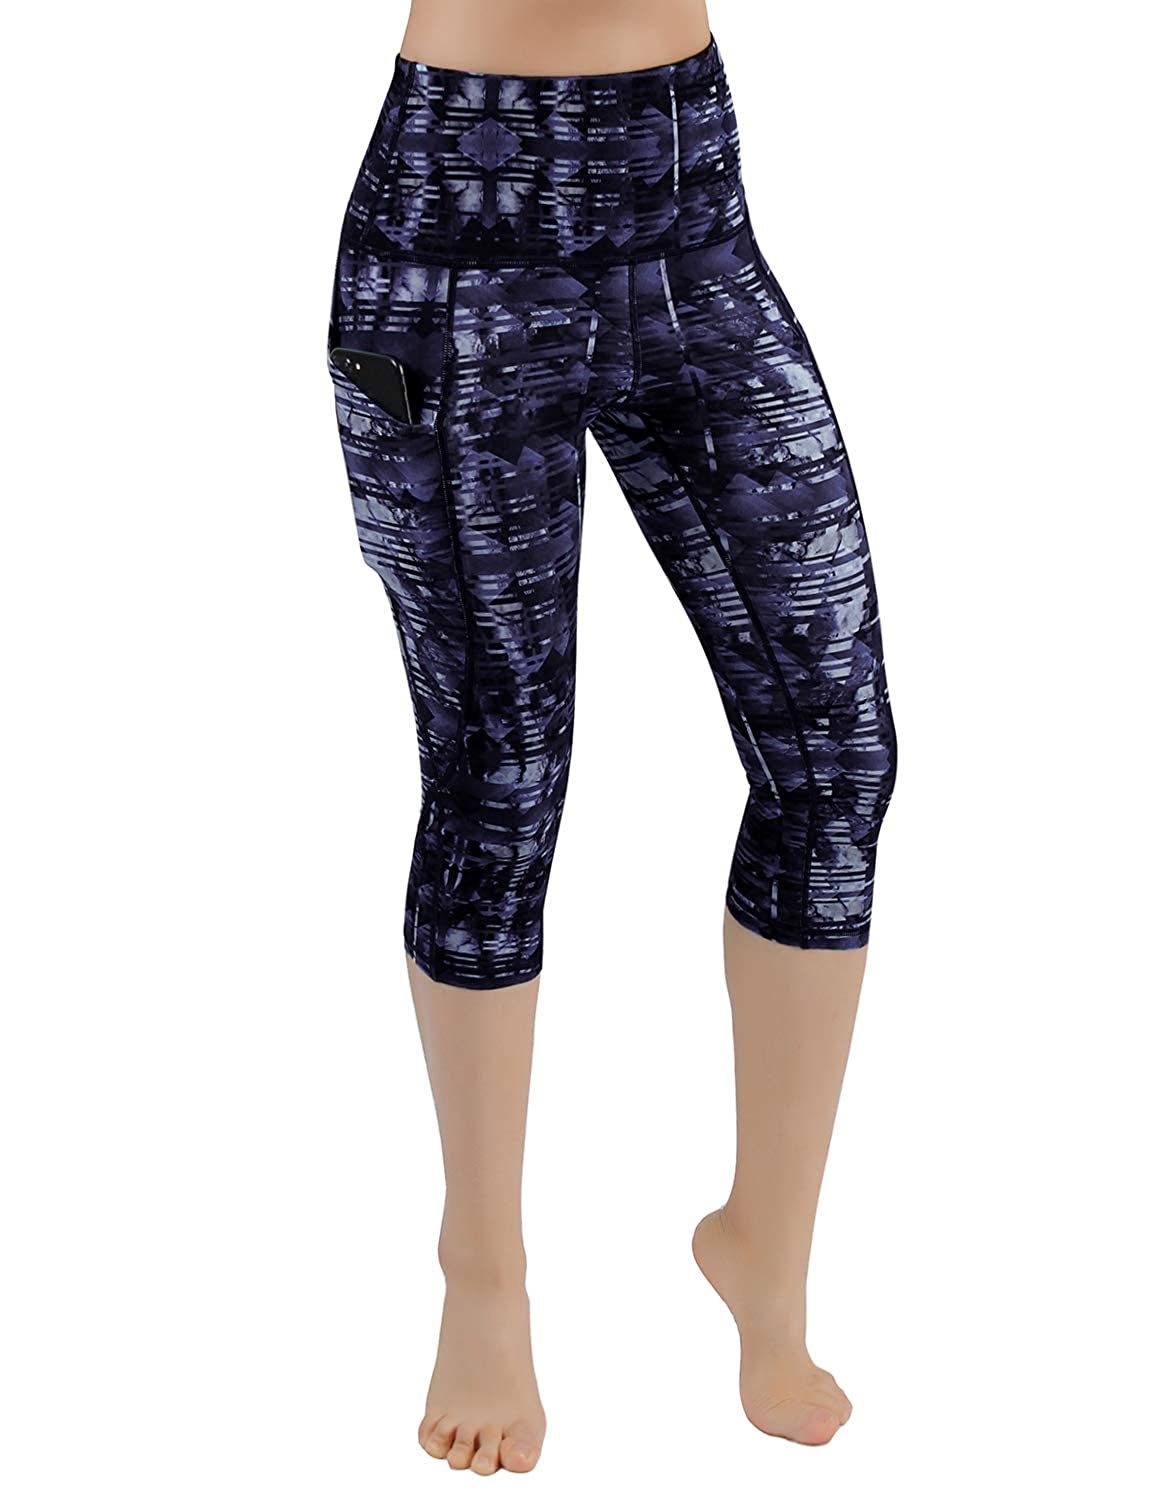 Pocketpc928indigodarkslatebluee ODODOS High Waist Out Pocket Printed Yoga Capris Pants Tummy Control Workout Running